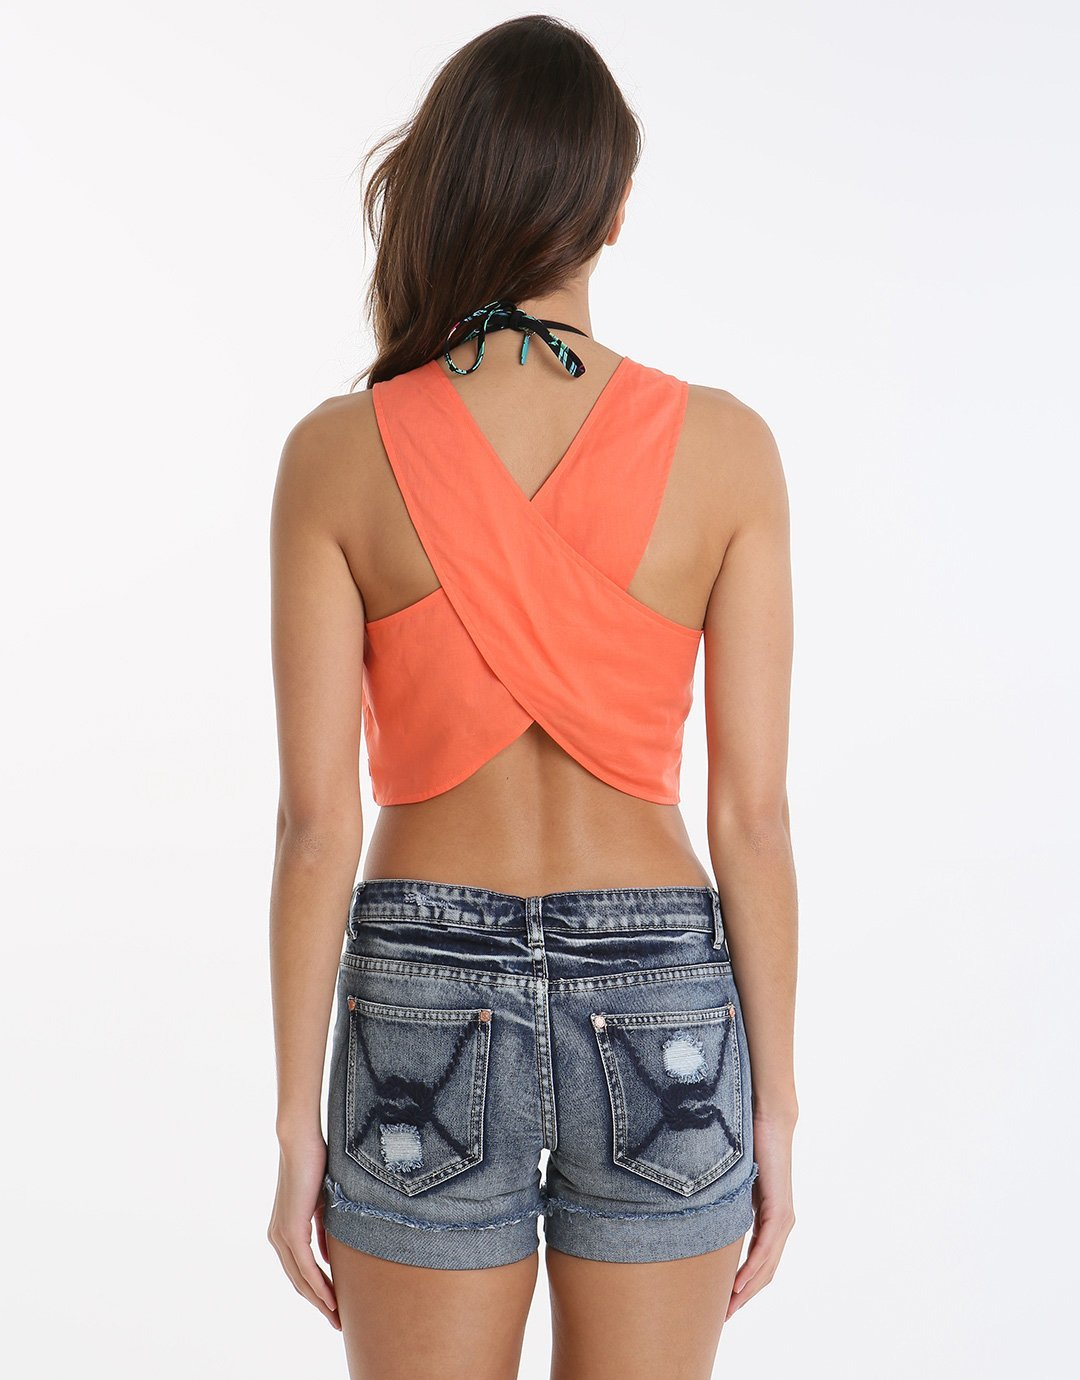 Seafolly Rails Top - Nectarine